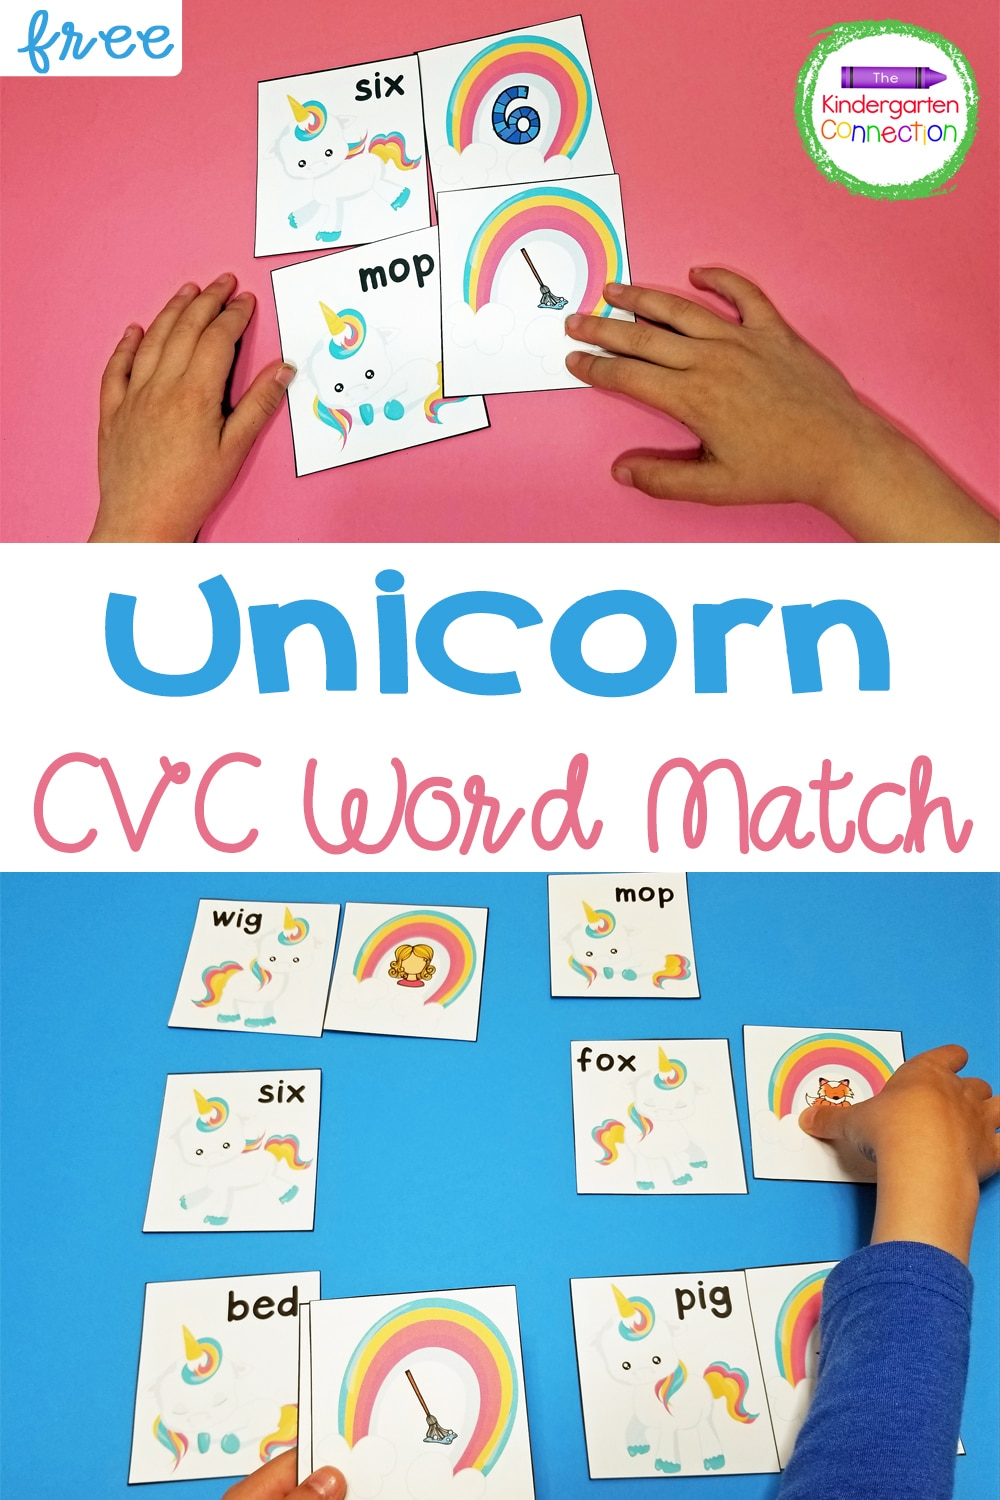 This free Unicorn CVC Word Match is the perfect literacy activity to boost practice with CVC words in a fun, hands-on way!